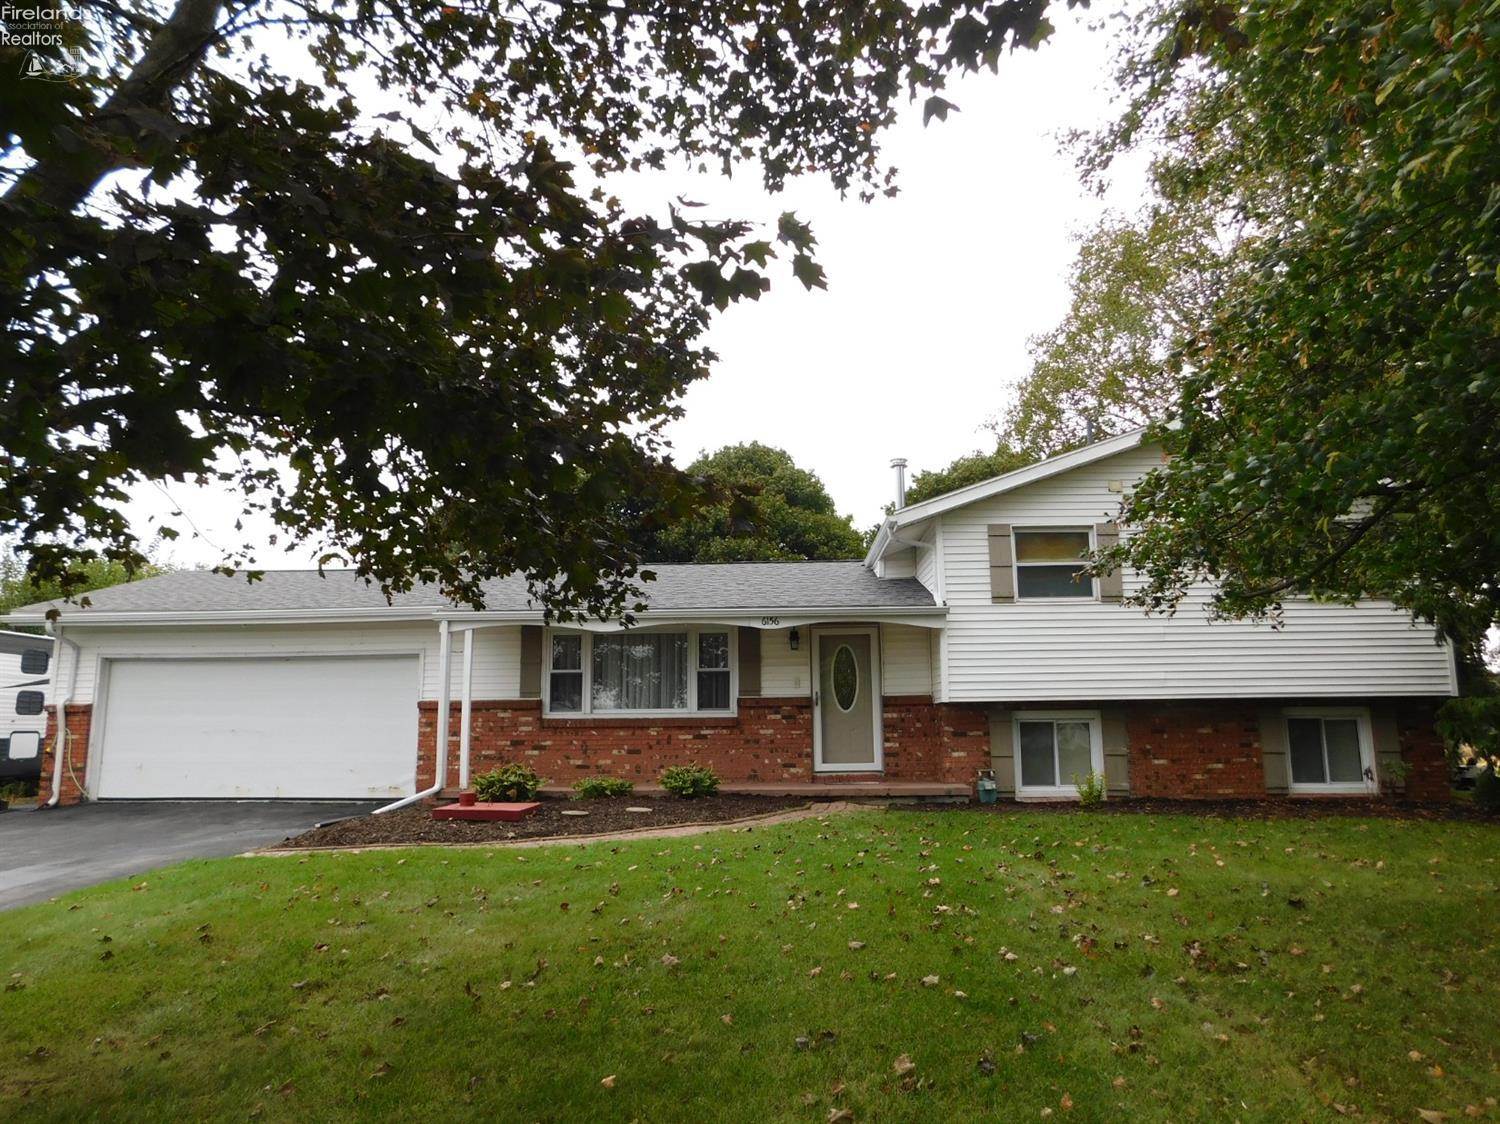 Browse our Real Estate Listings in Northern Ohio